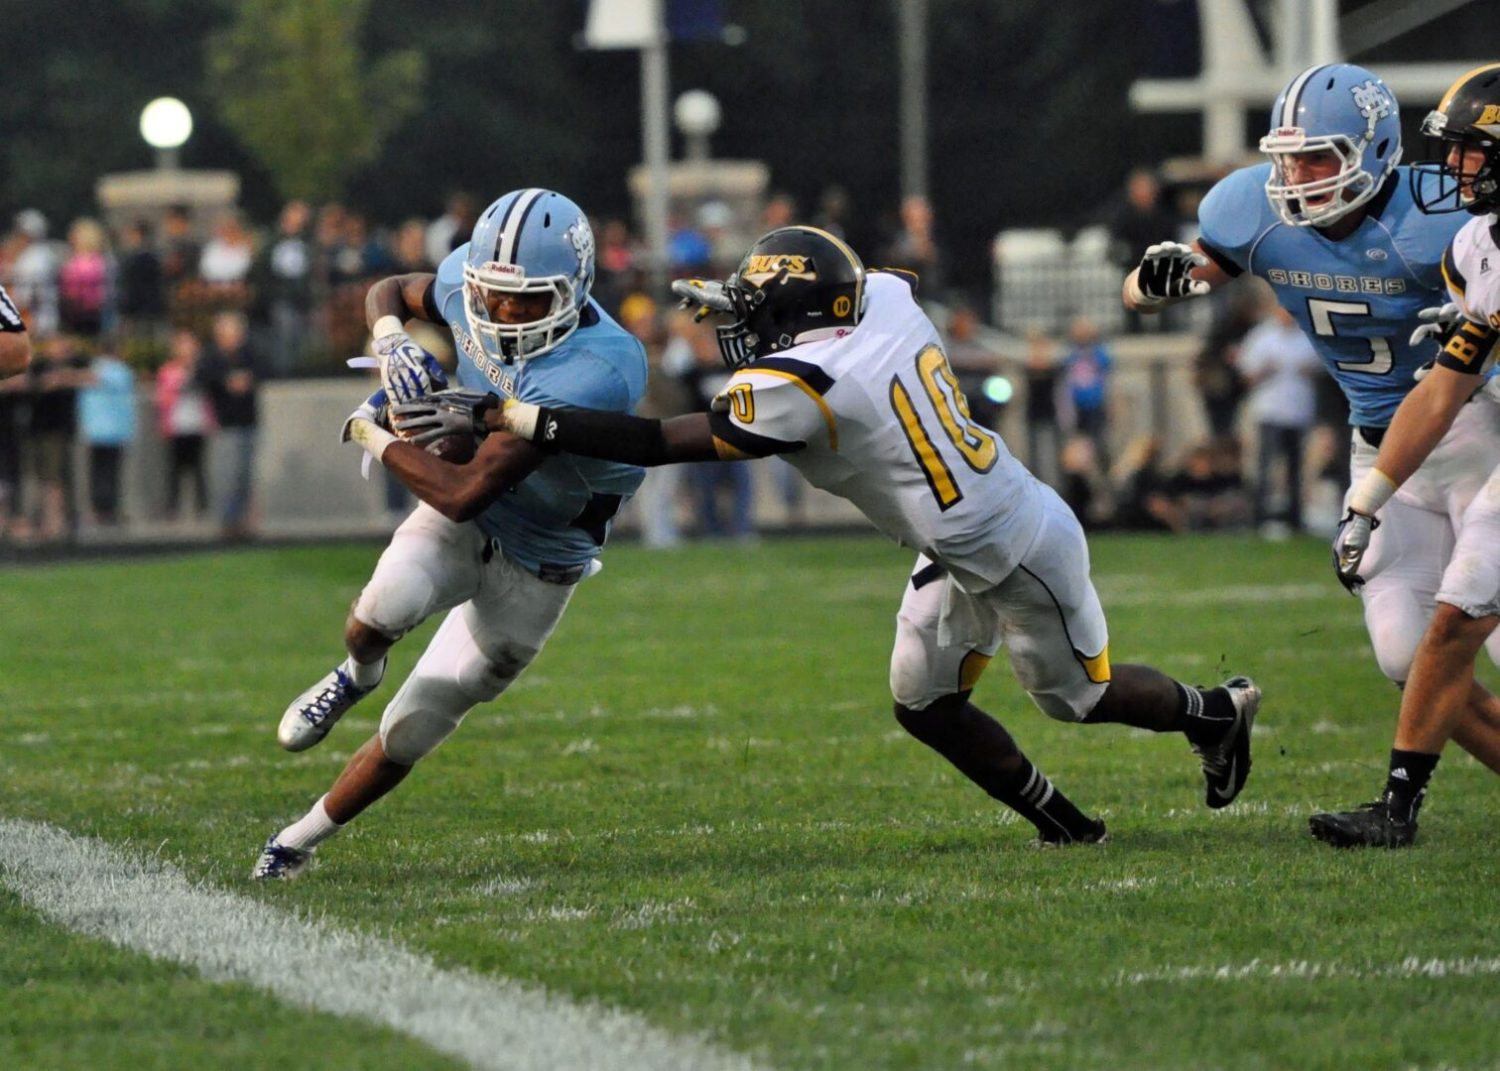 Offense on full display in Mona Shores' bout against Grand Haven [VIDEO]